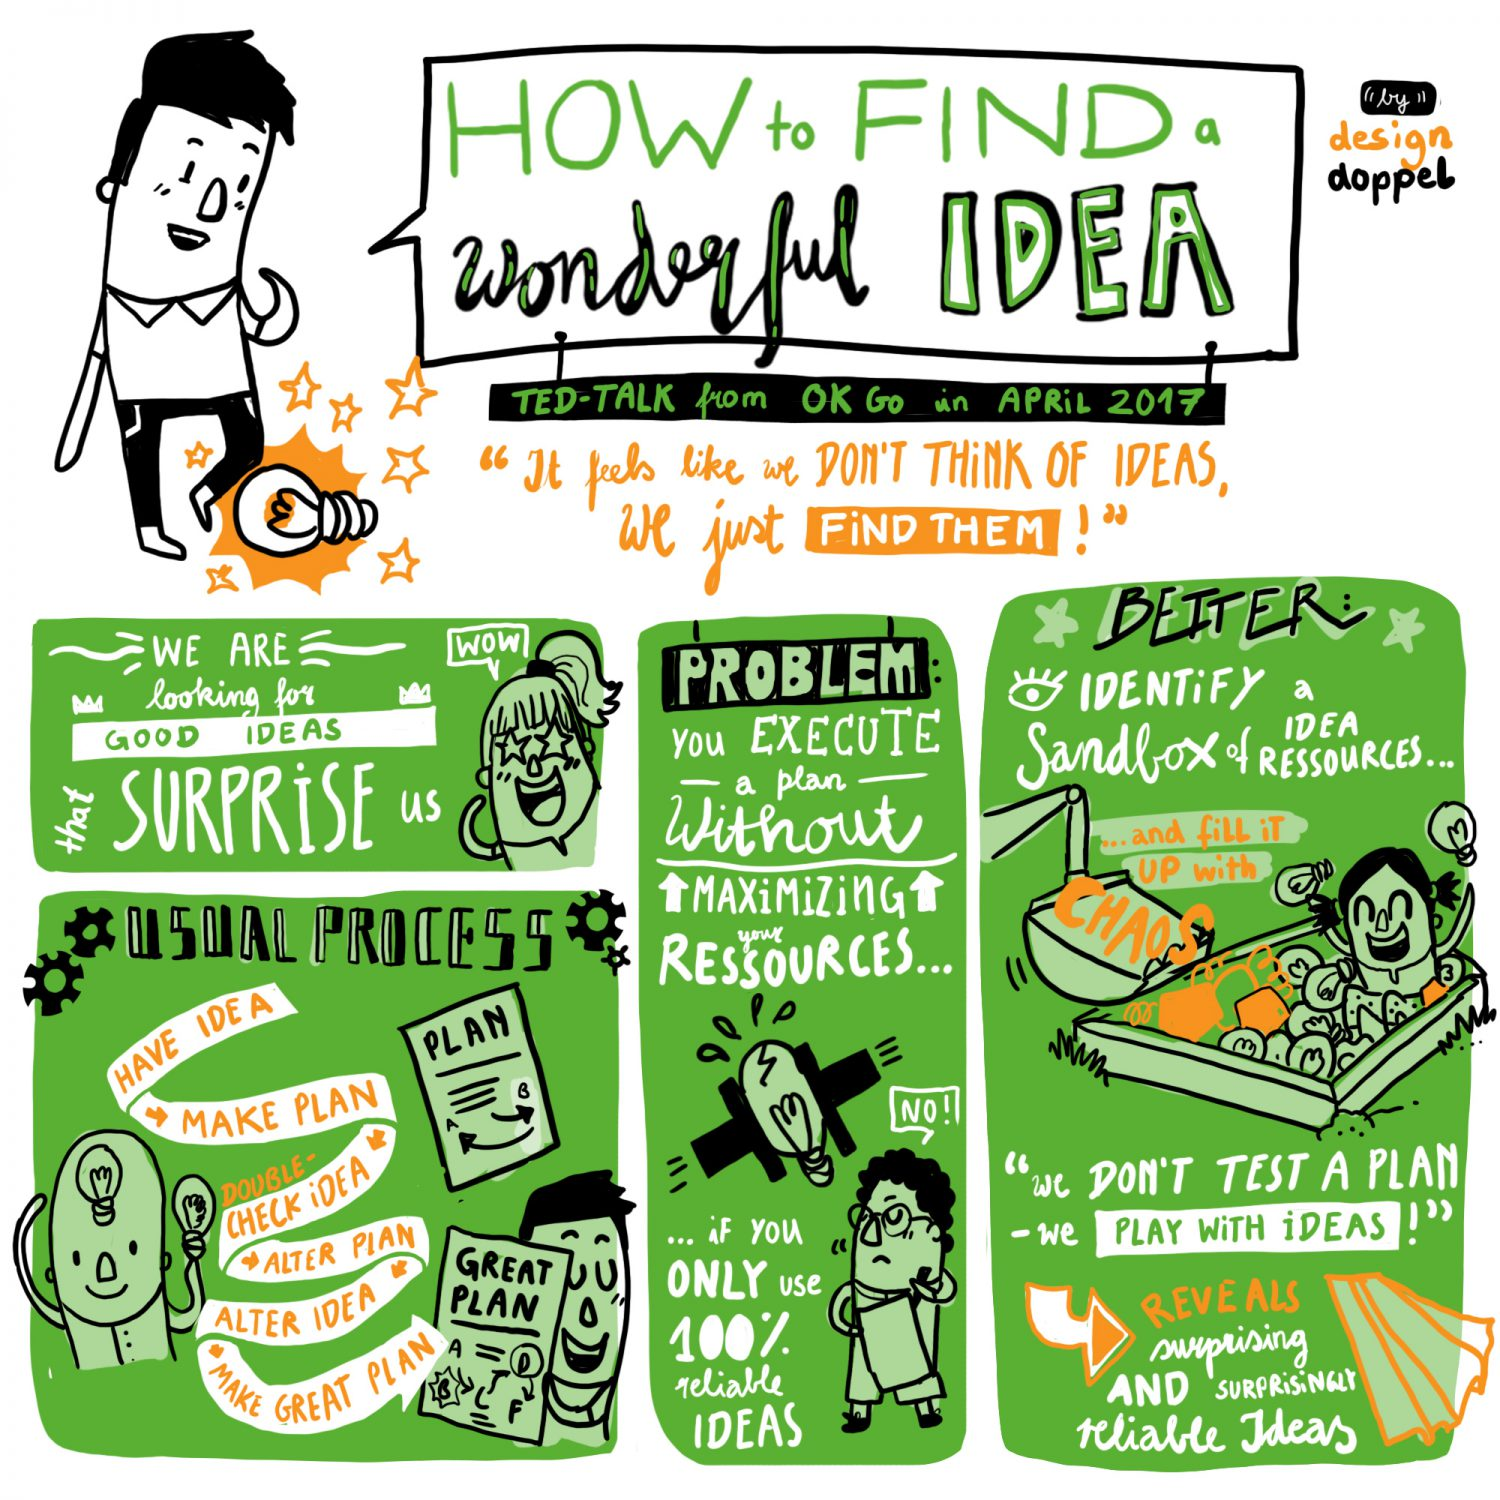 Graphic Recording digital idea illustration TED OK Go Sketchnote